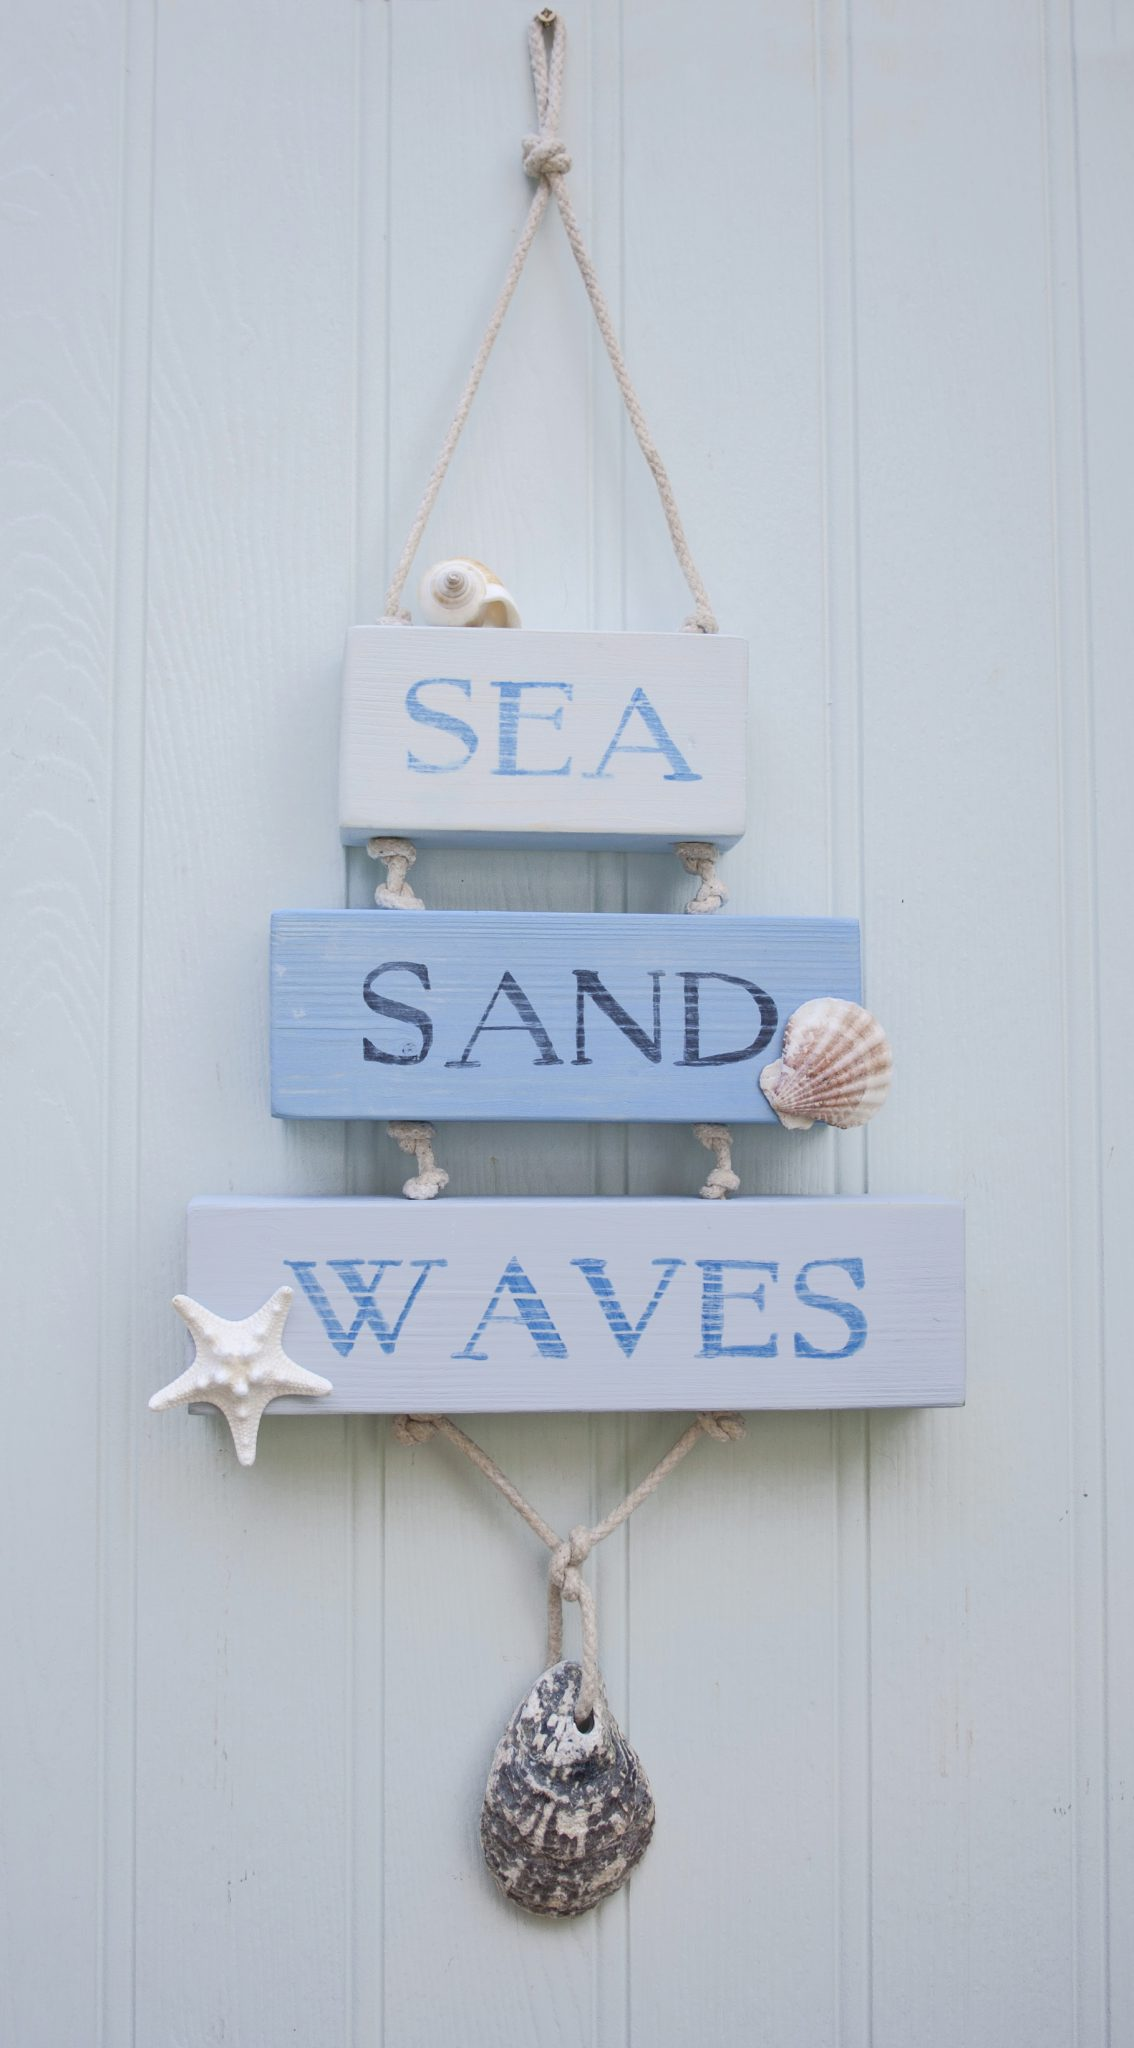 Sea Sand Waves coastal beach house sign